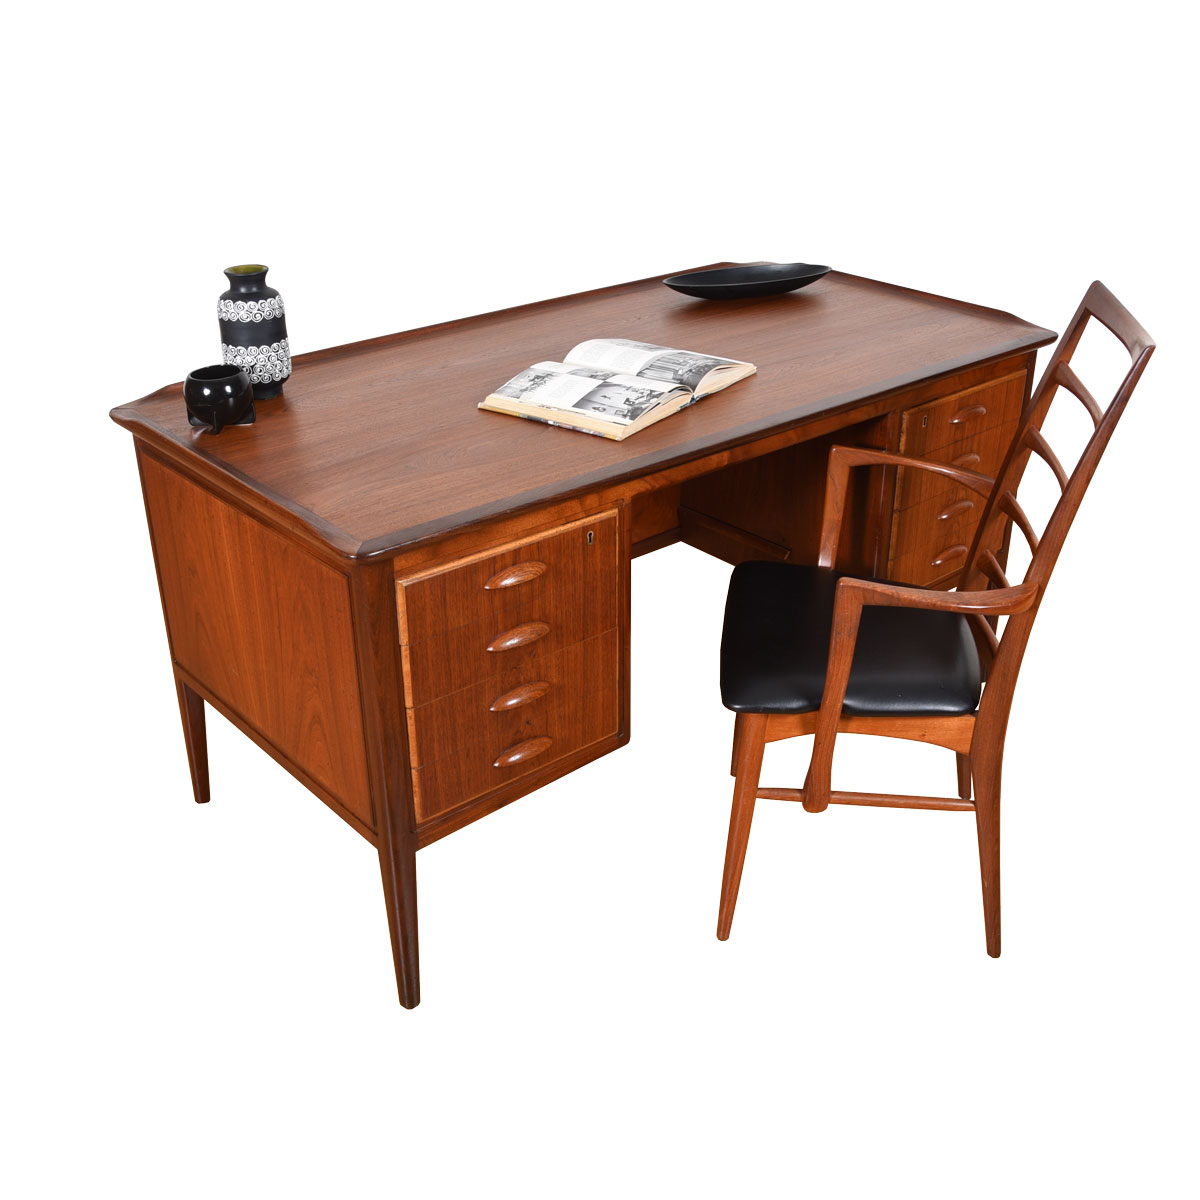 The Sultry Danish Modern Teak Desk w/ Bookcase Front